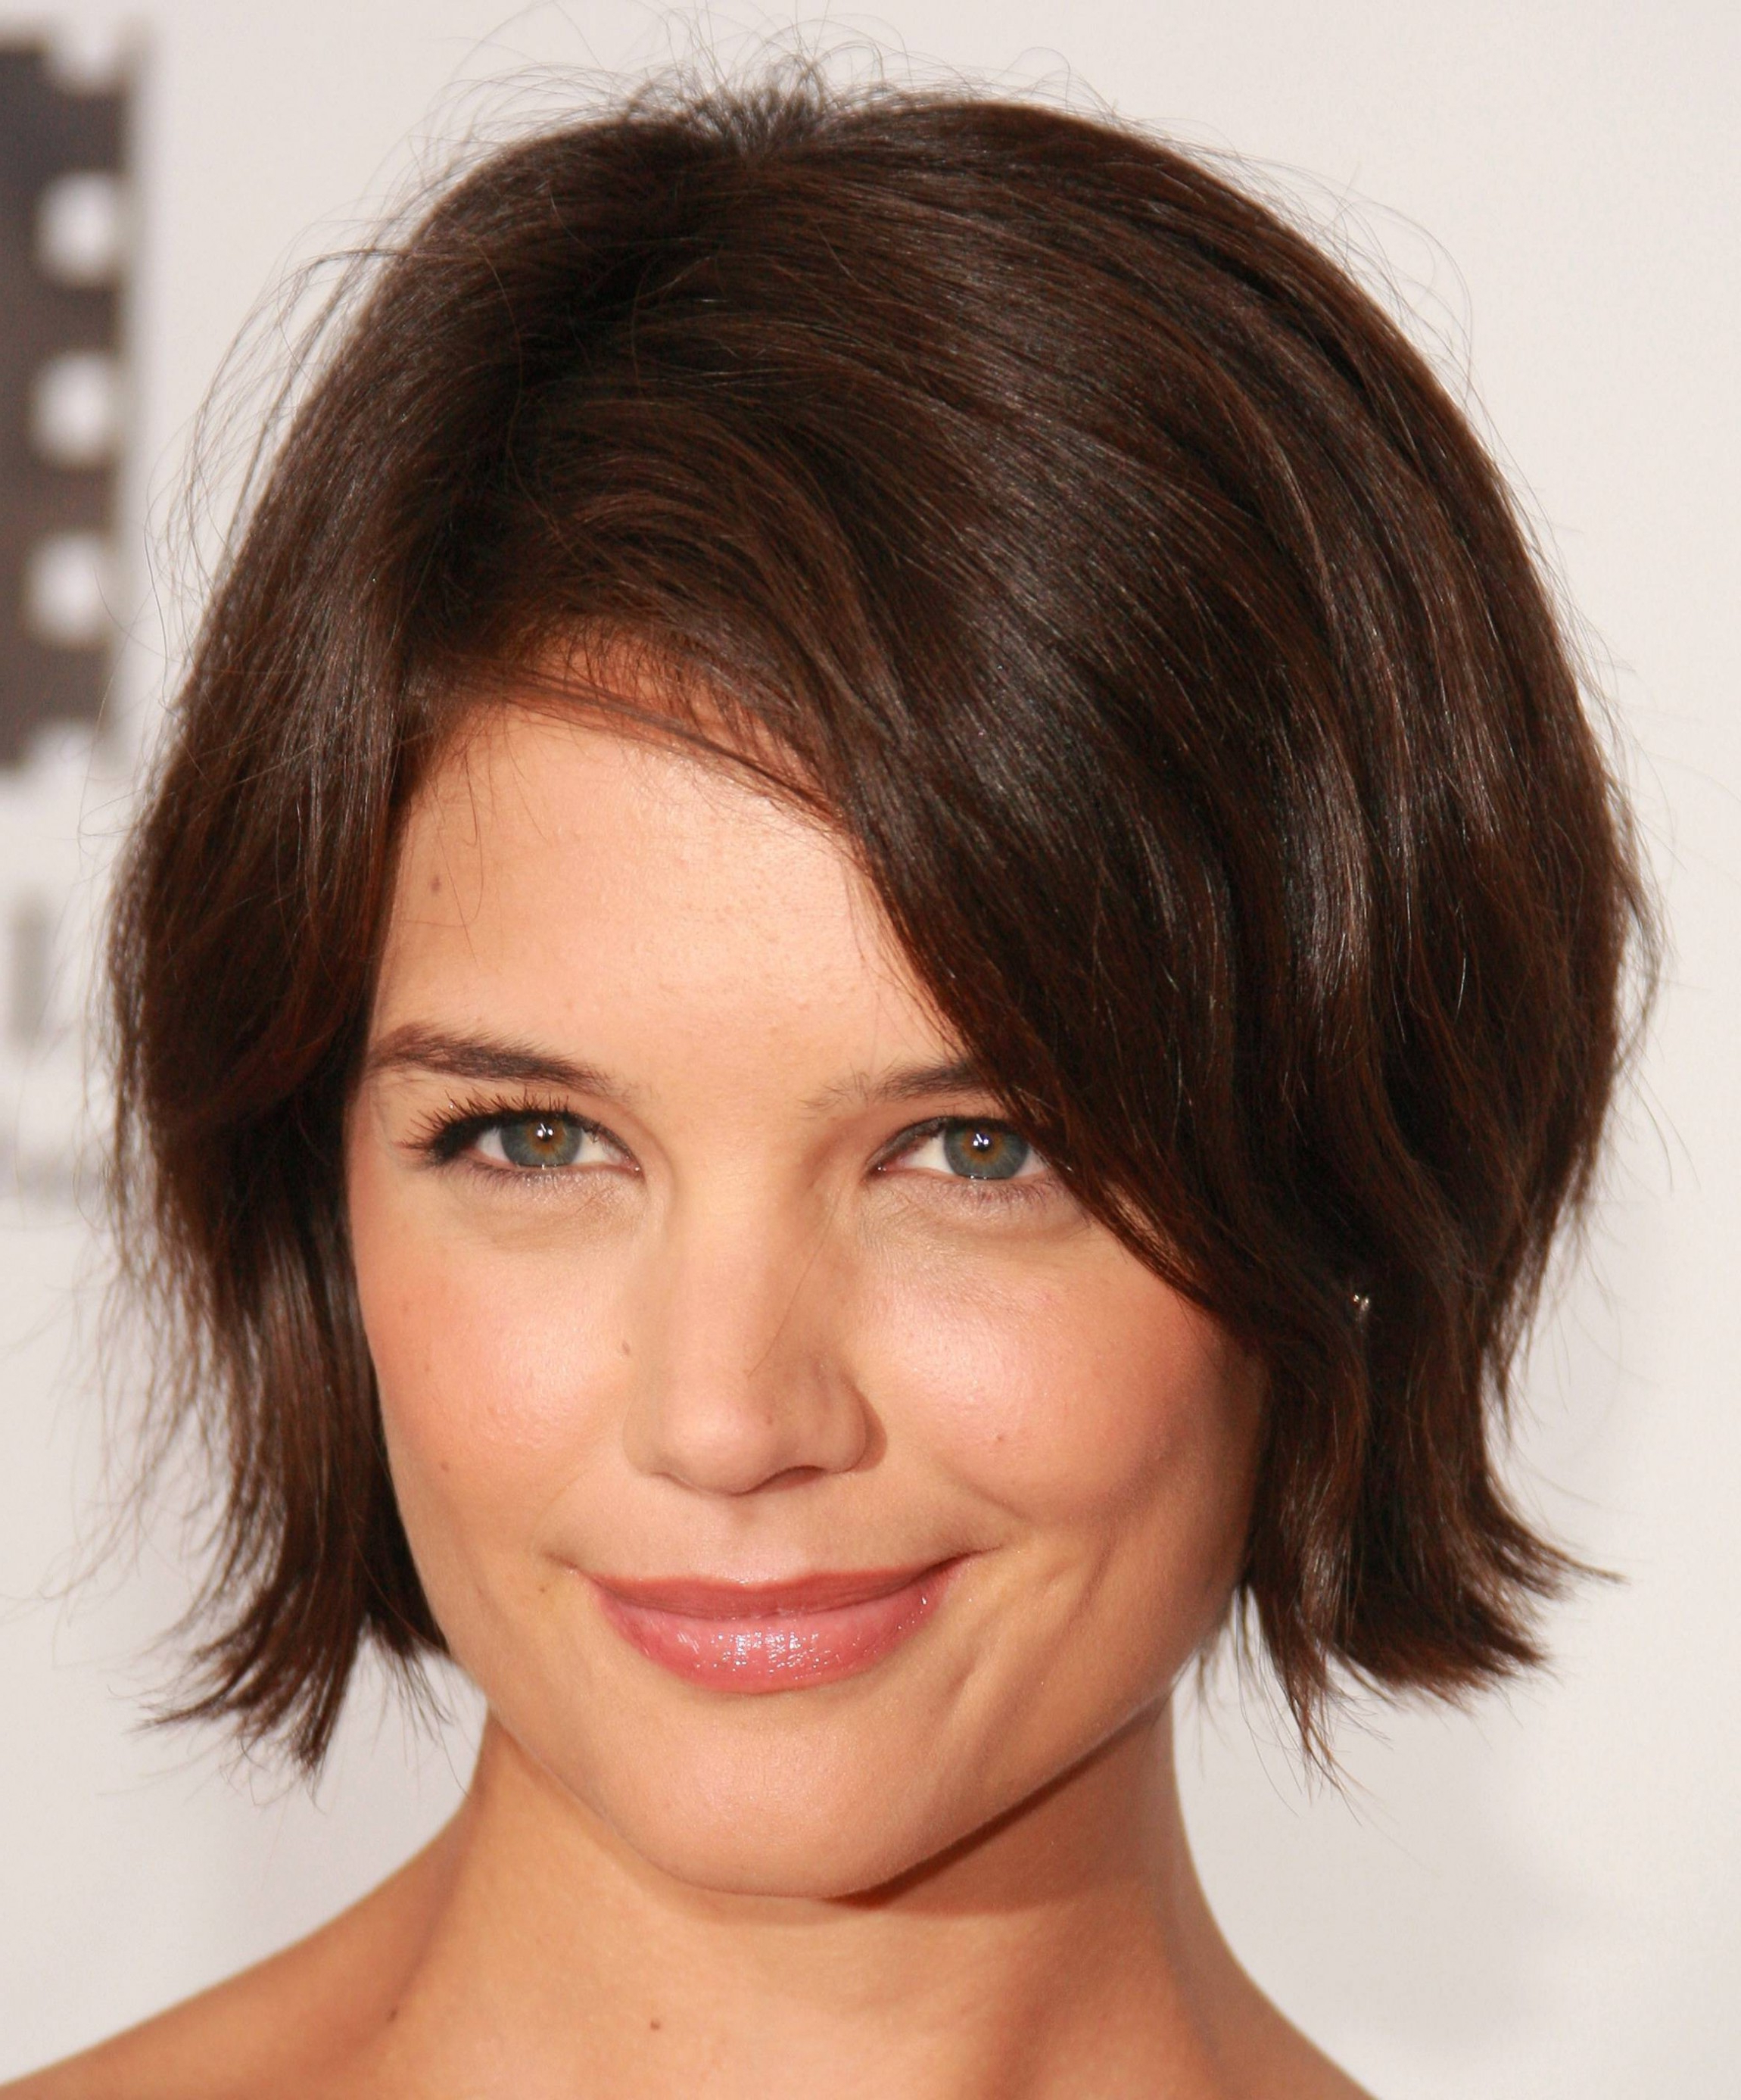 Best Short Hairstyles – Cute Hair Cut Guide For Round Face Shape With Regard To Short Hair For Round Chubby Face (View 14 of 25)